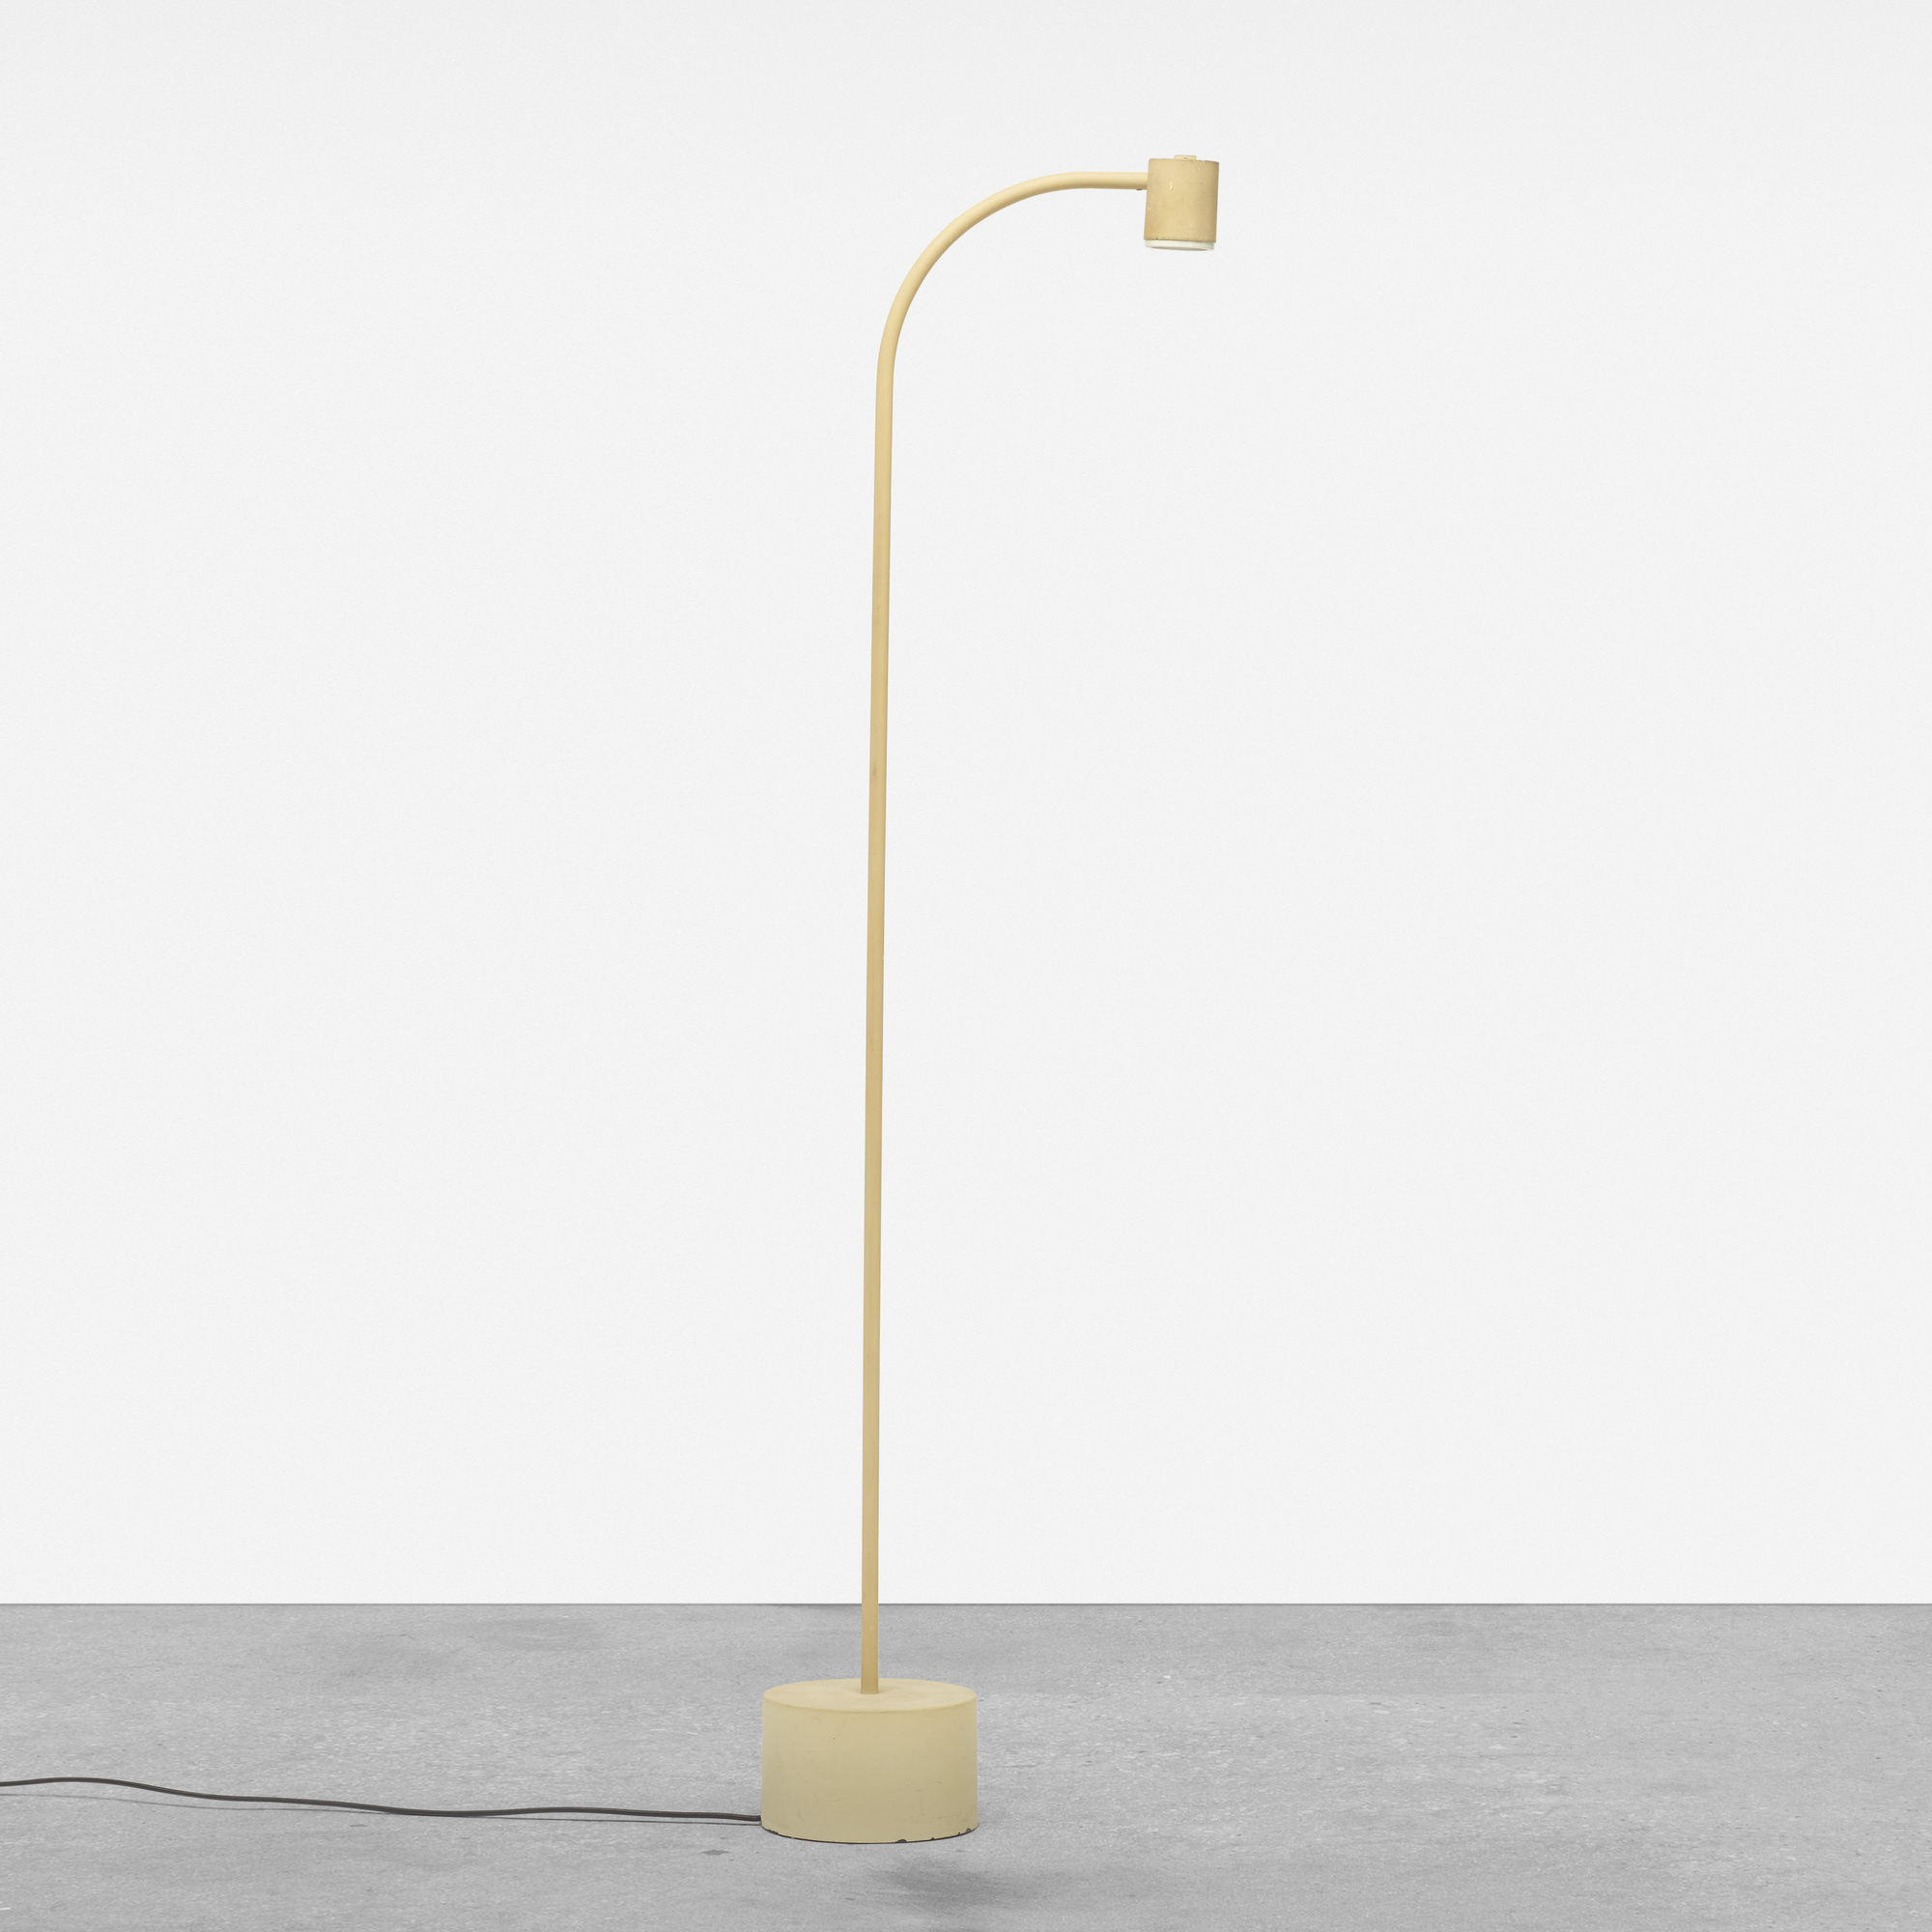 283: Ettore Sottsass / Halo Click floor lamp (1 of 3)